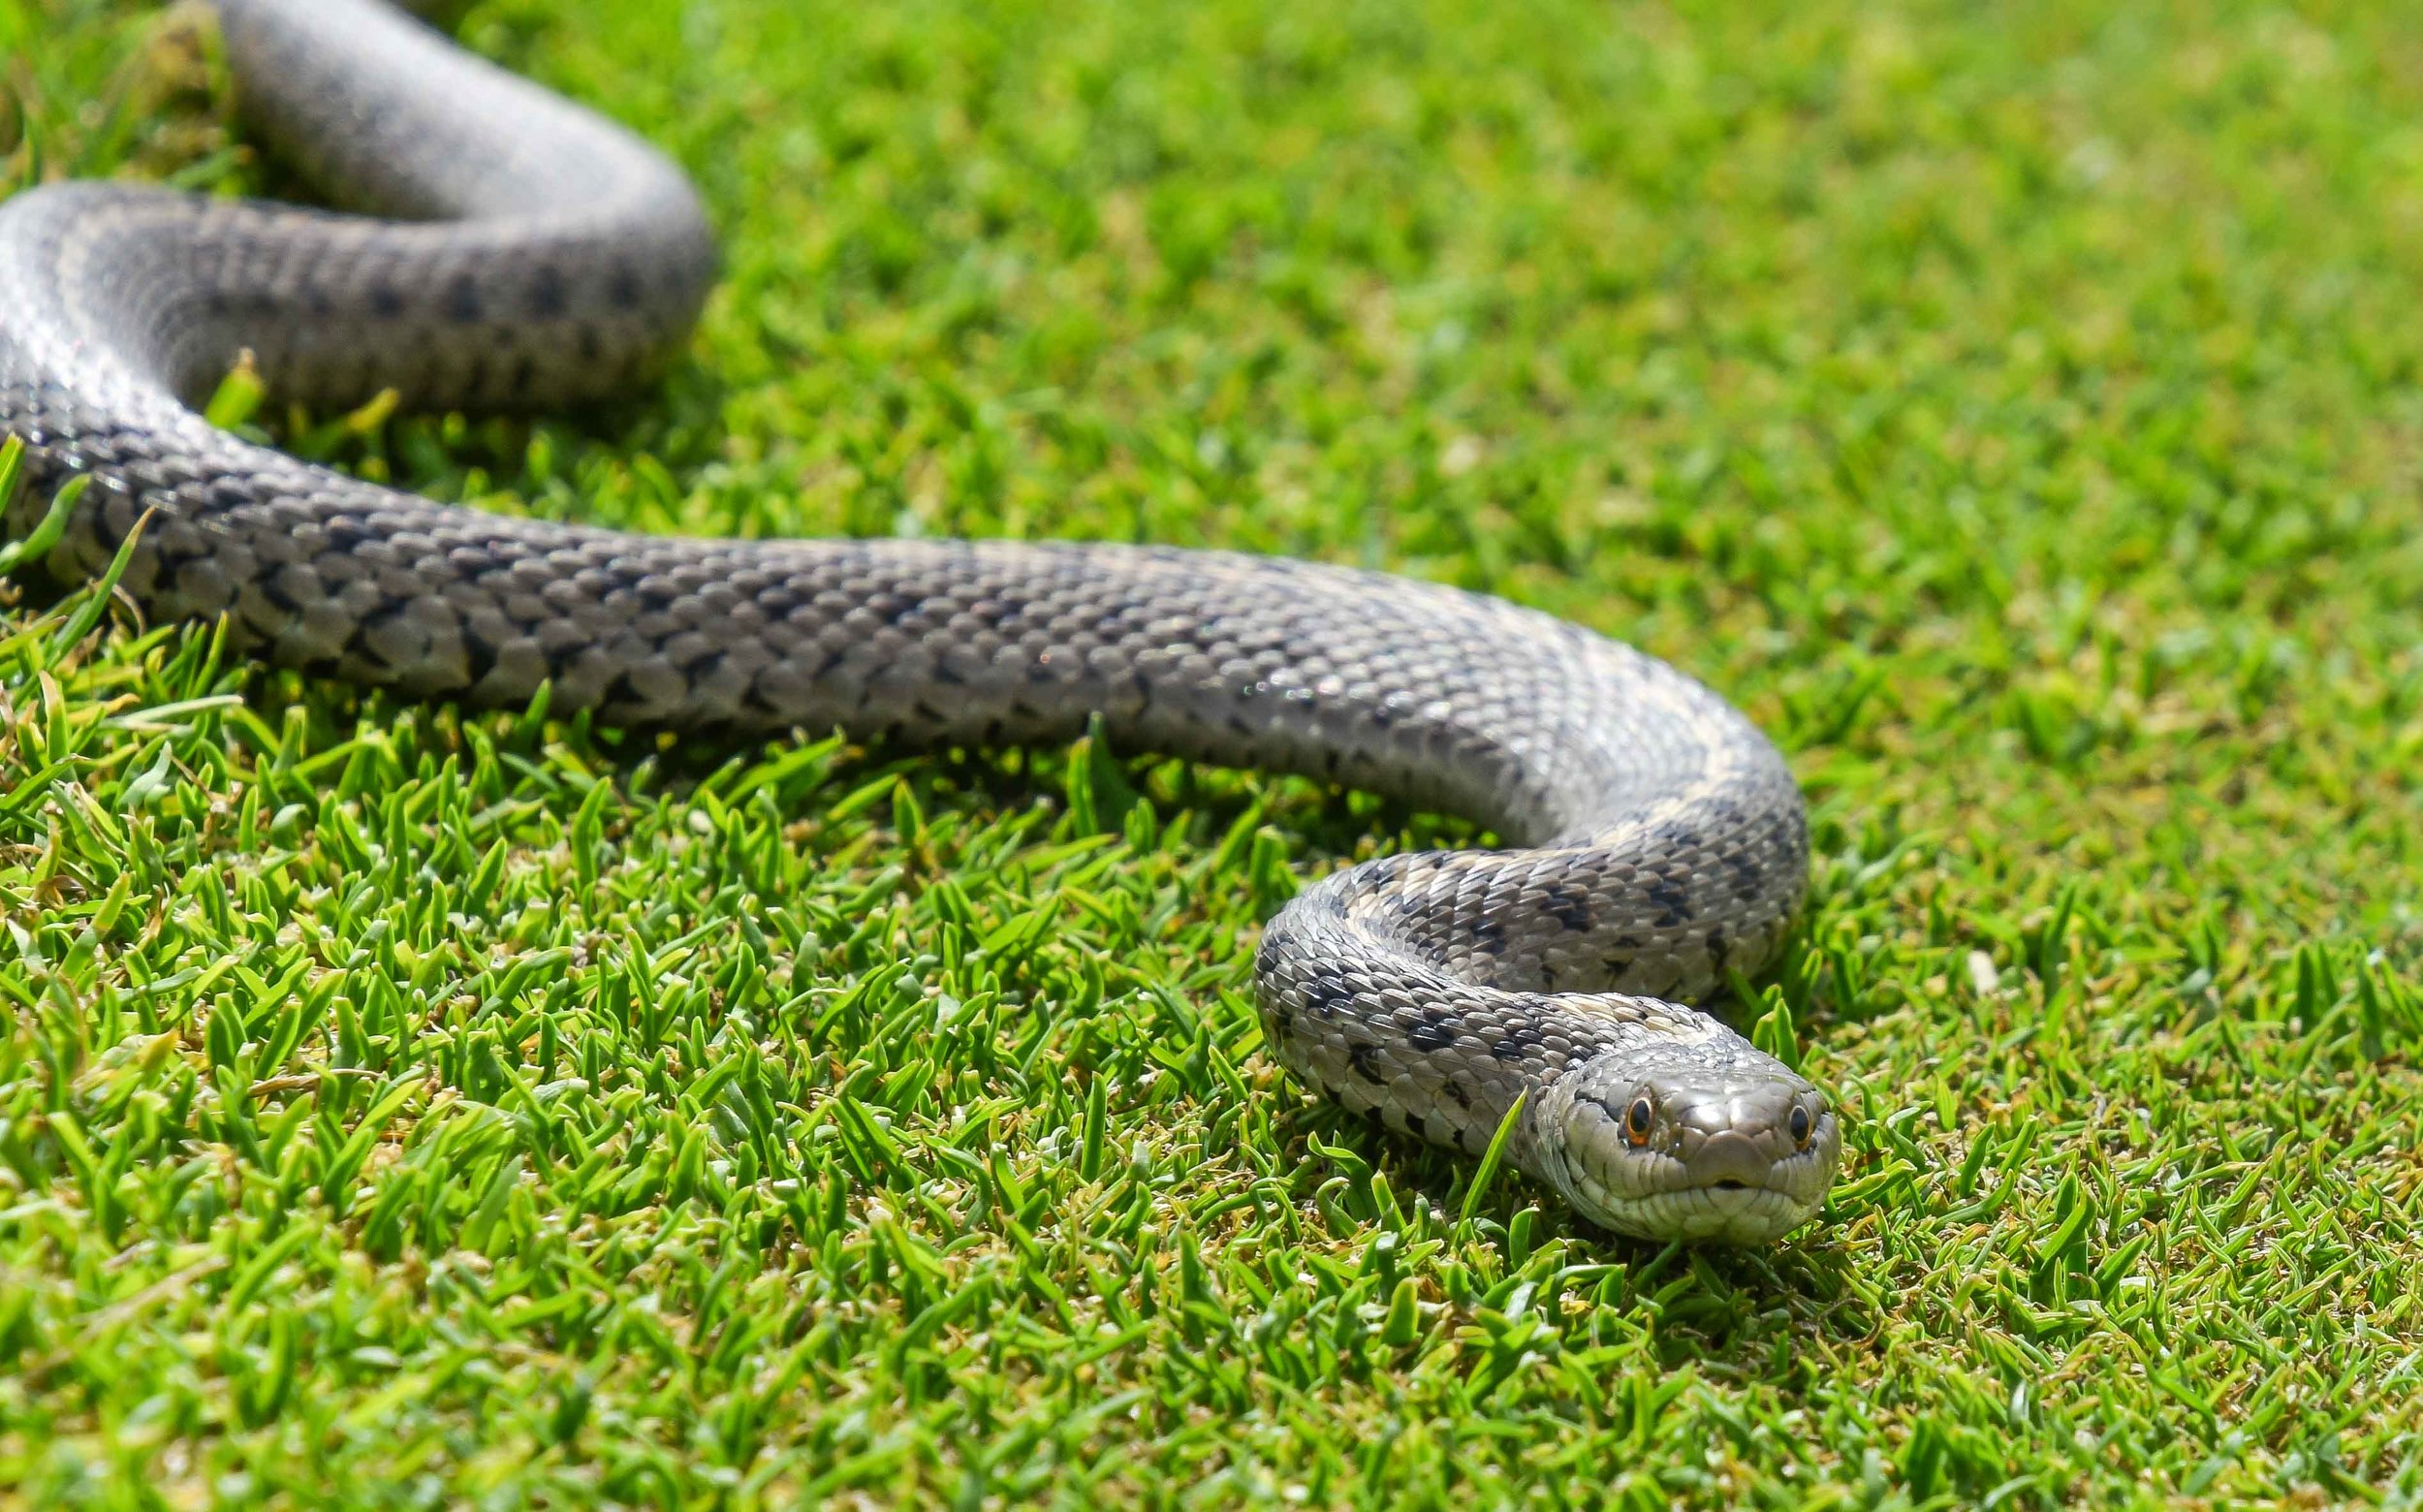 Golf Snake Alert! This harmless little guy was hanging out near the pin on the 2nd hole. He witnessed several pars and a lip out bogey.